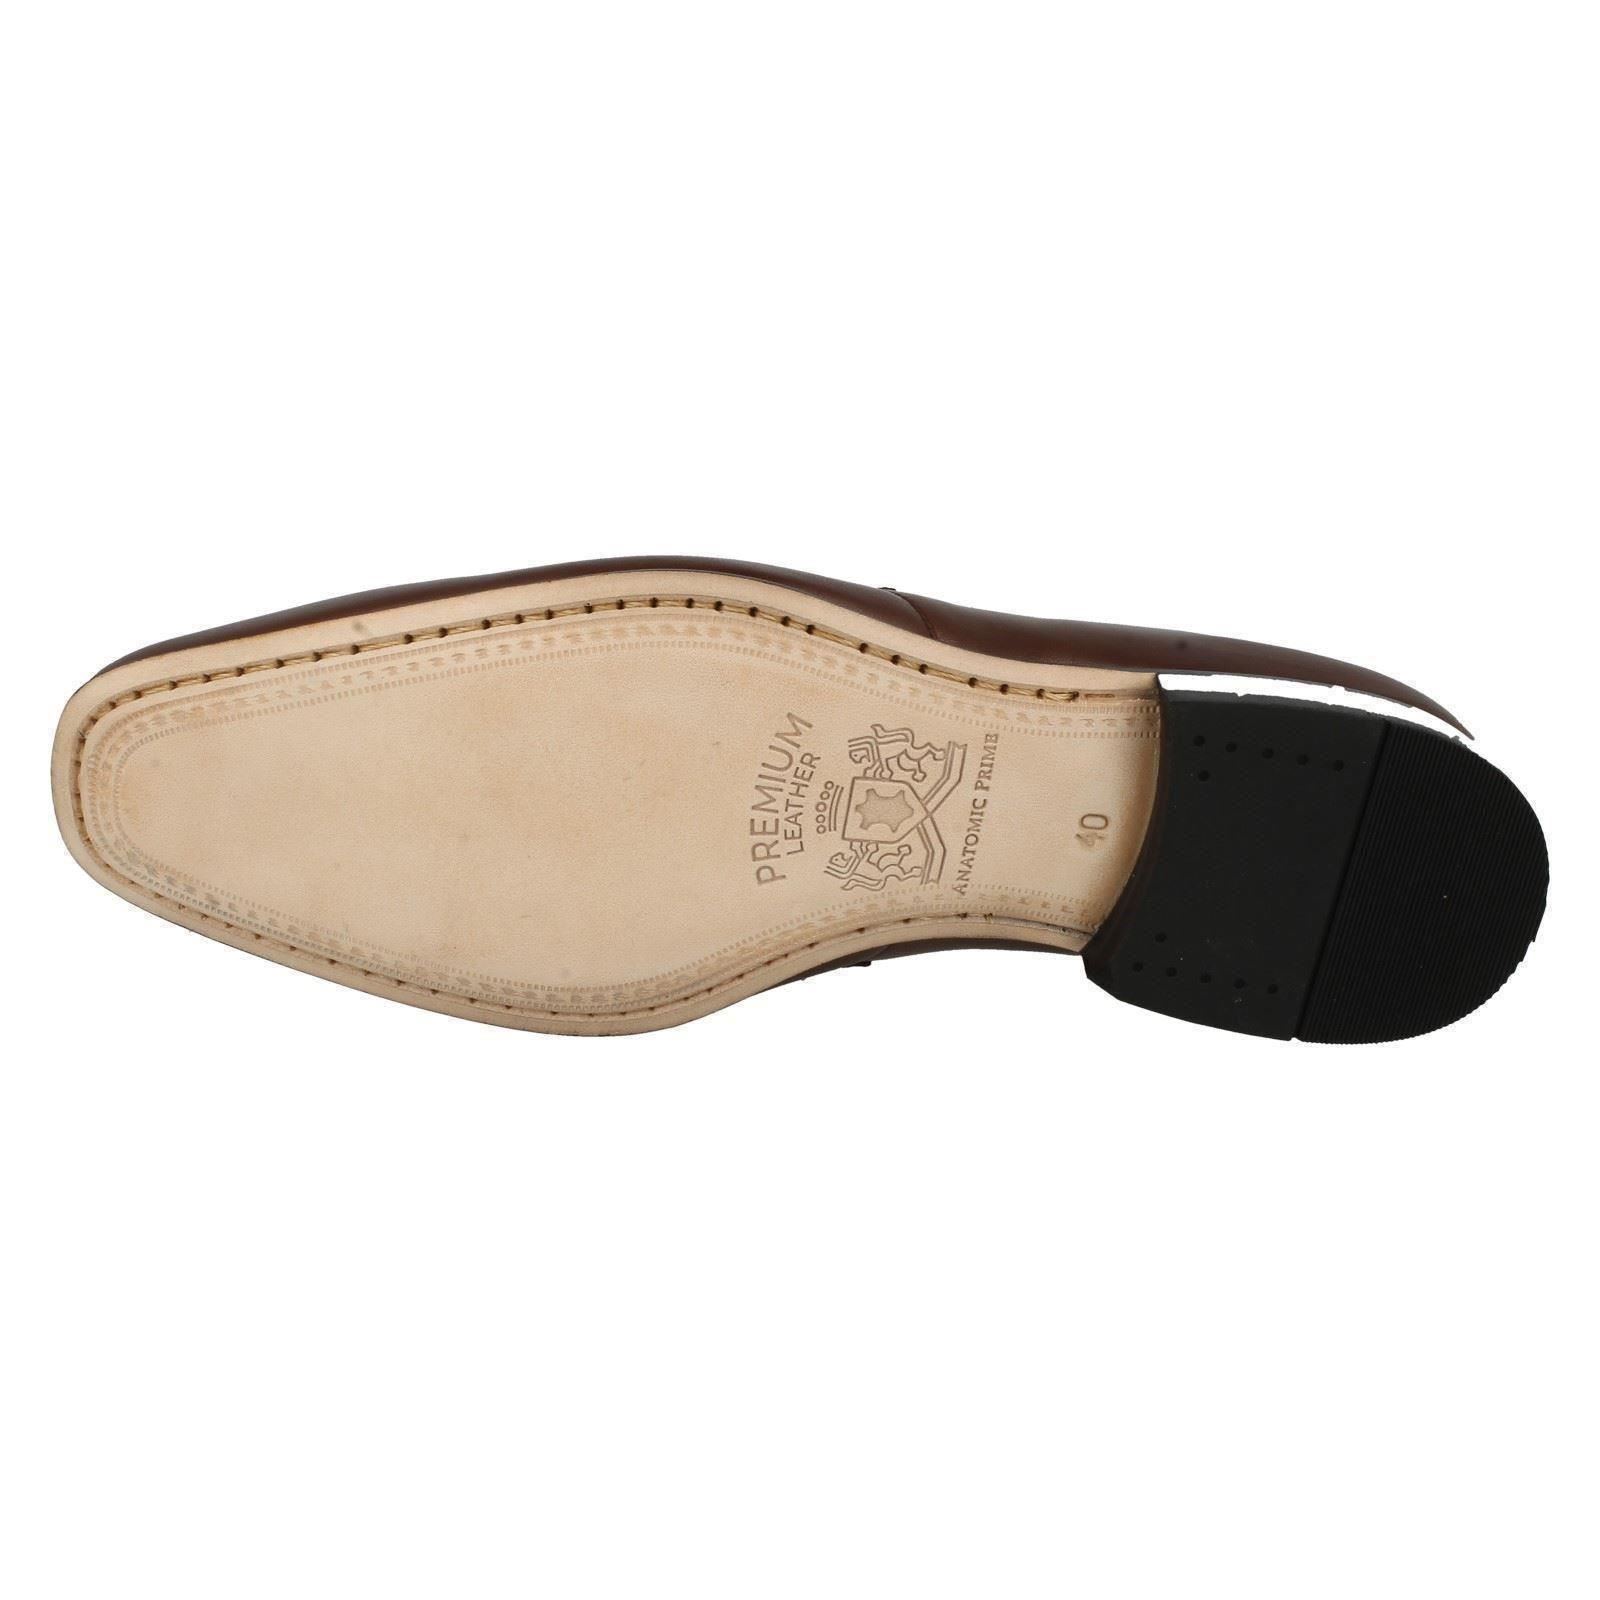 Mens Anatomic Formal Slip On Shoes The Style Goiana 2-W